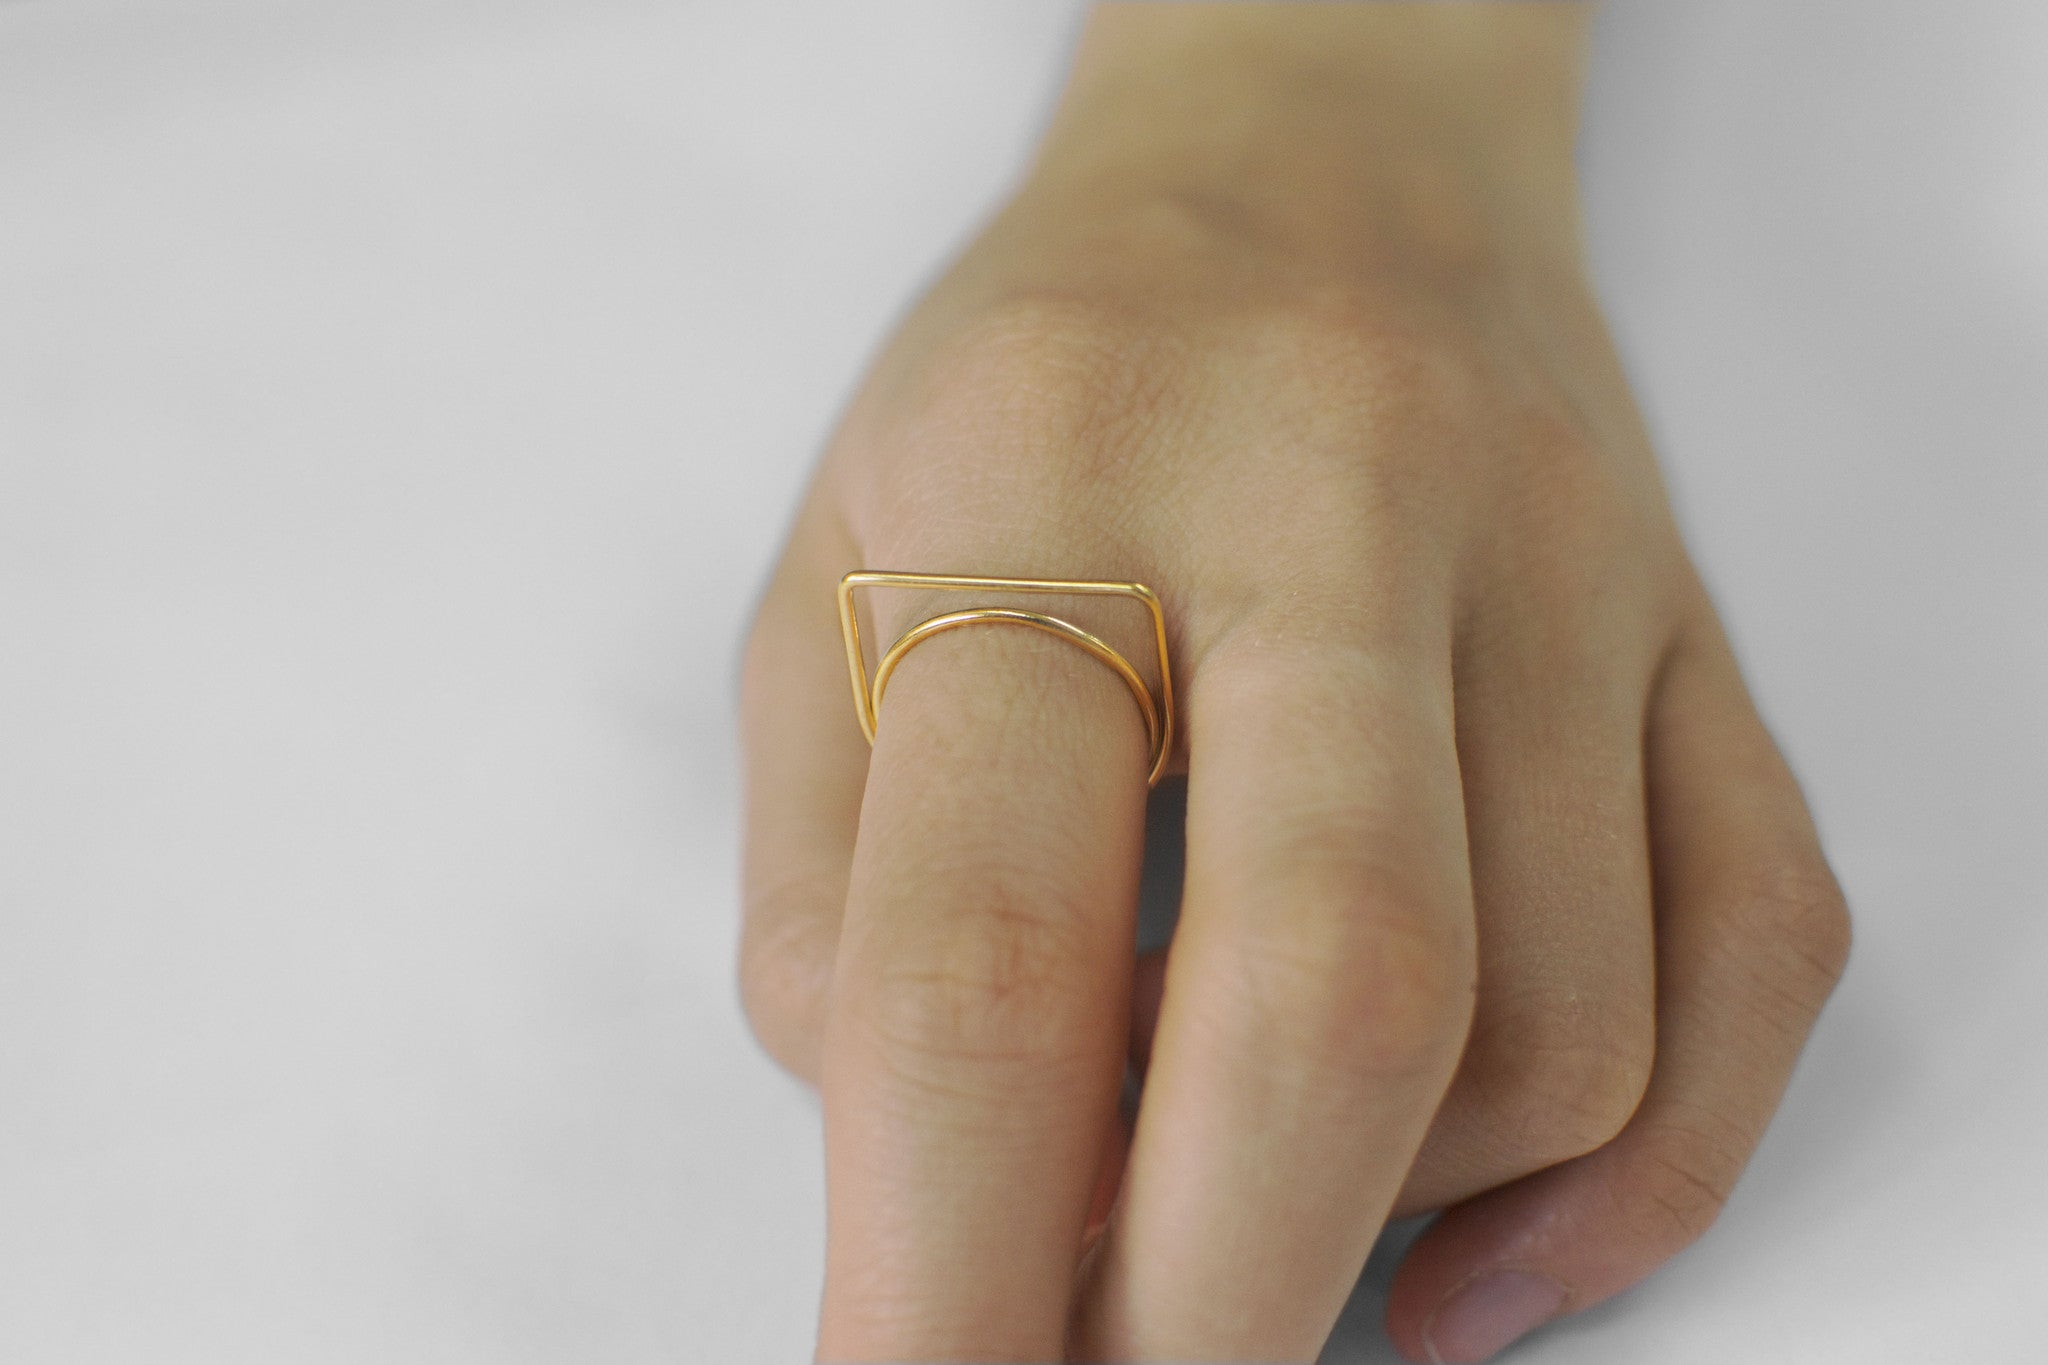 →Square Top← Finger Ring